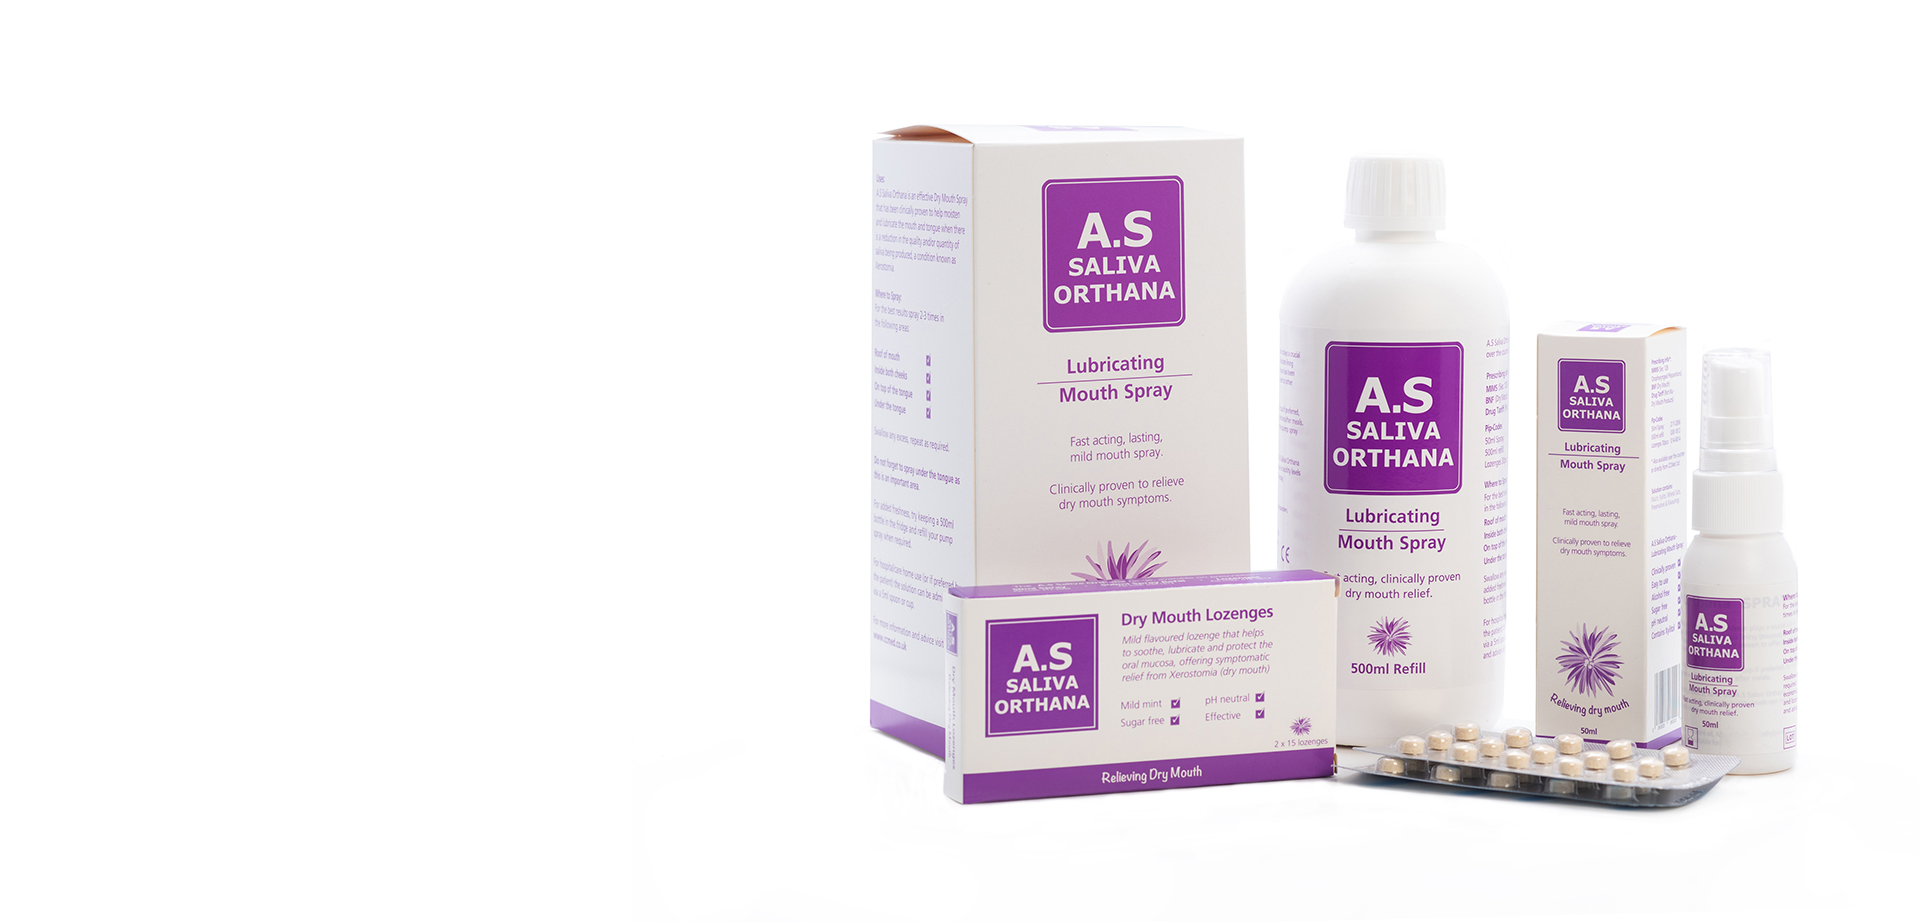 A.S Saliva Orthana - Dry Mouth Relief. Clinically proven, effective, pH neutral